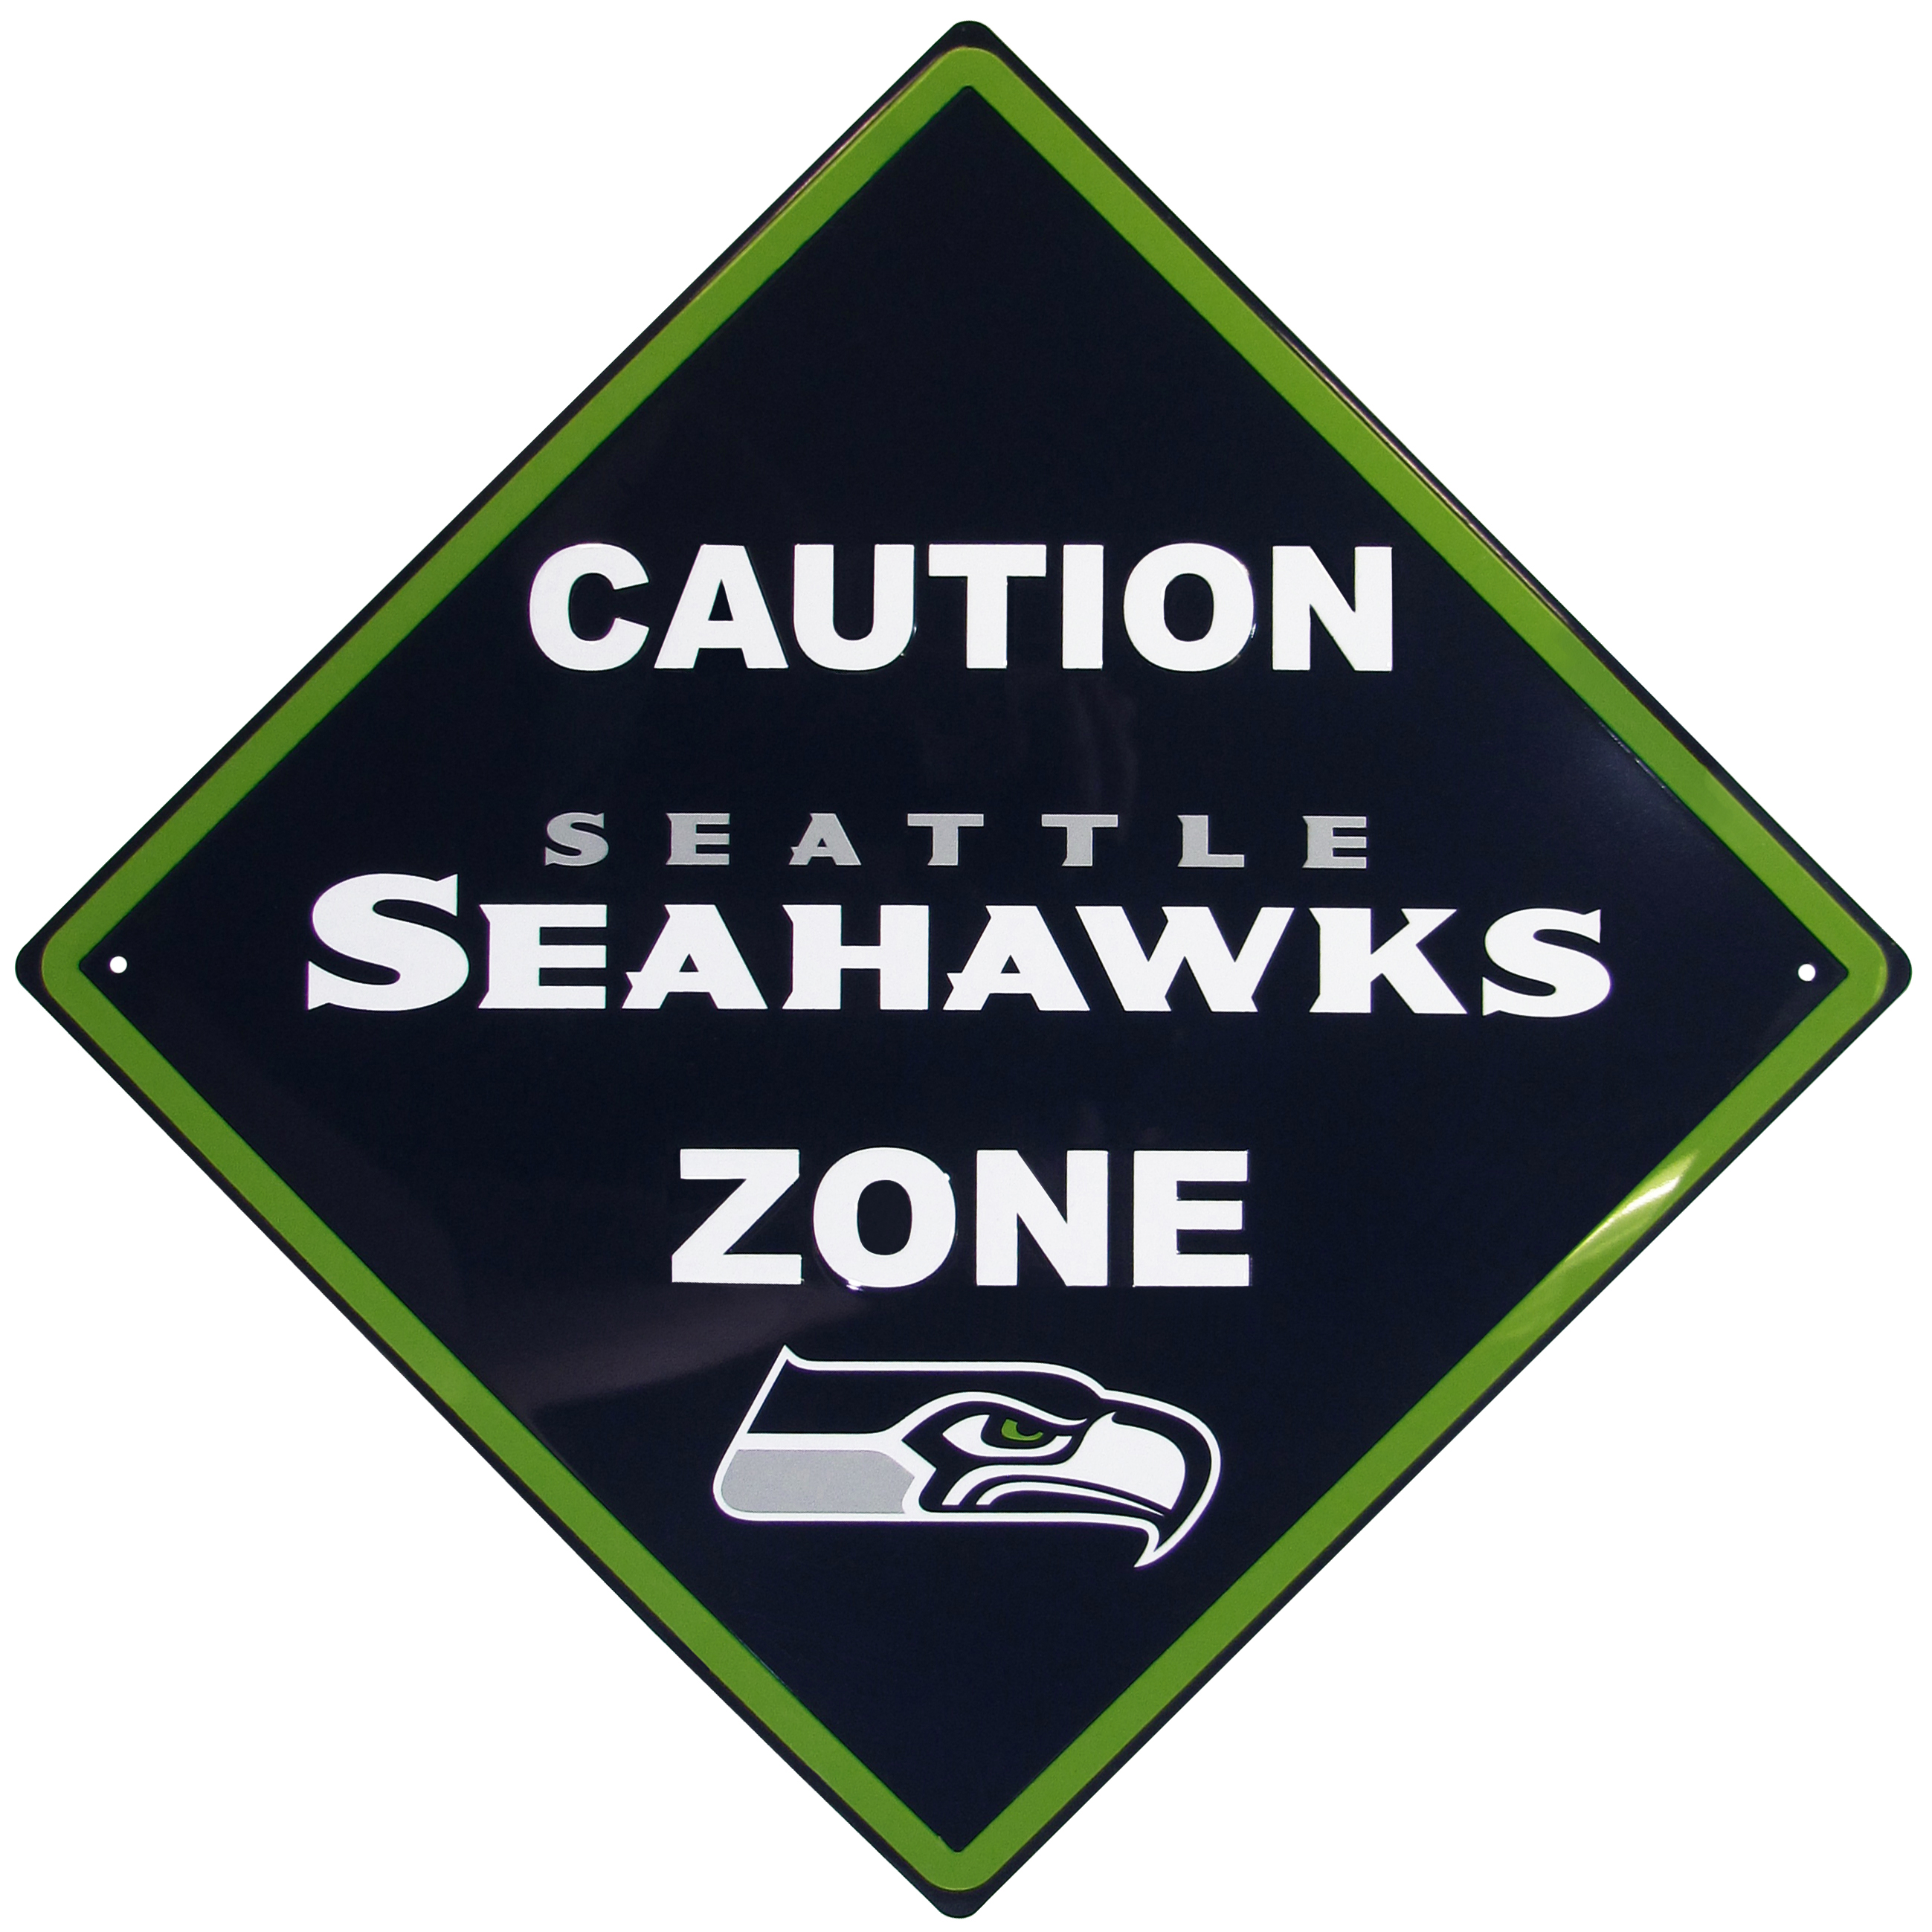 Seattle Seahawks Caution Wall Sign Plaque - Let everyone know that they are entering Seattle Seahawks territory! Our 14 inch caution wall plaques are a the perfect way to convert any room into a fan cave! The light-weight aluminum signs mount easily to any wall and are perfect for the home or office.